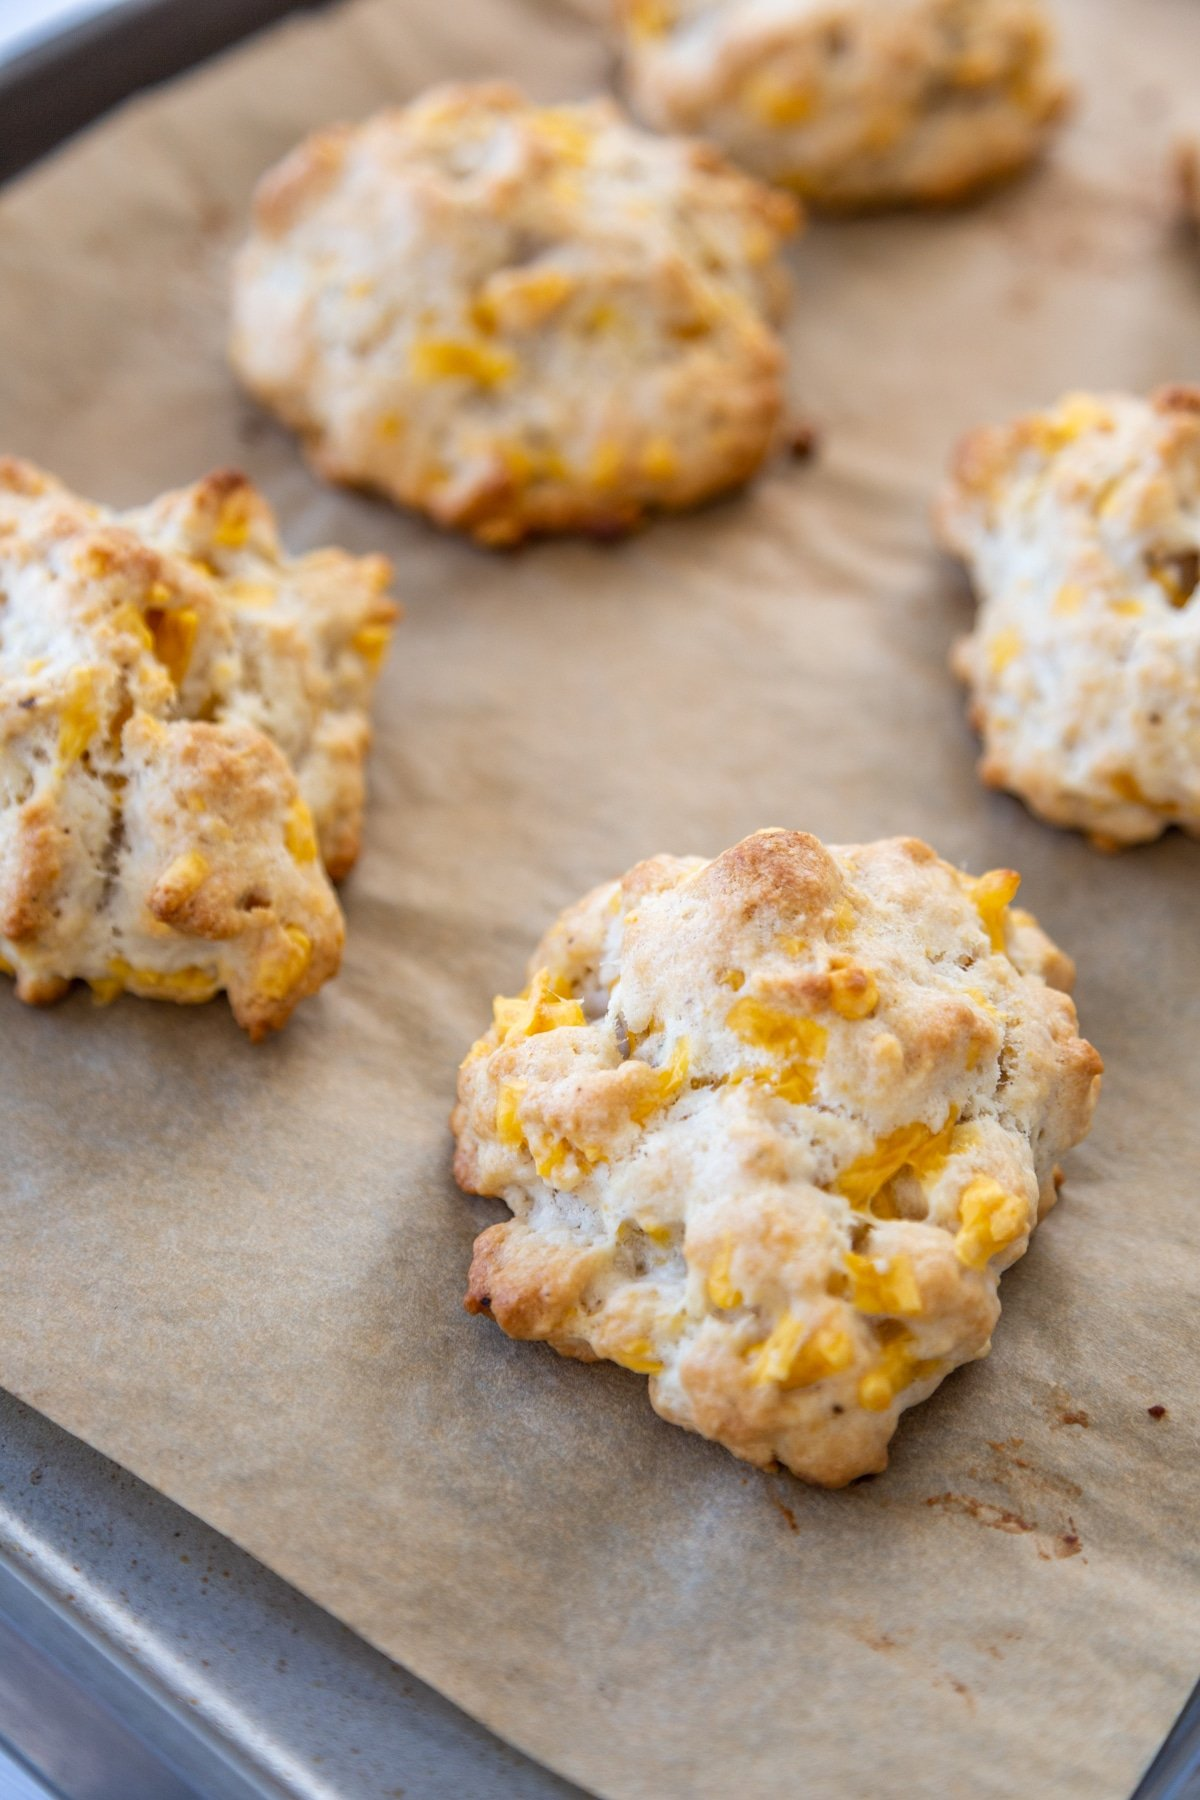 Cheddar drop biscuits on a parchment paper lined baking sheet.